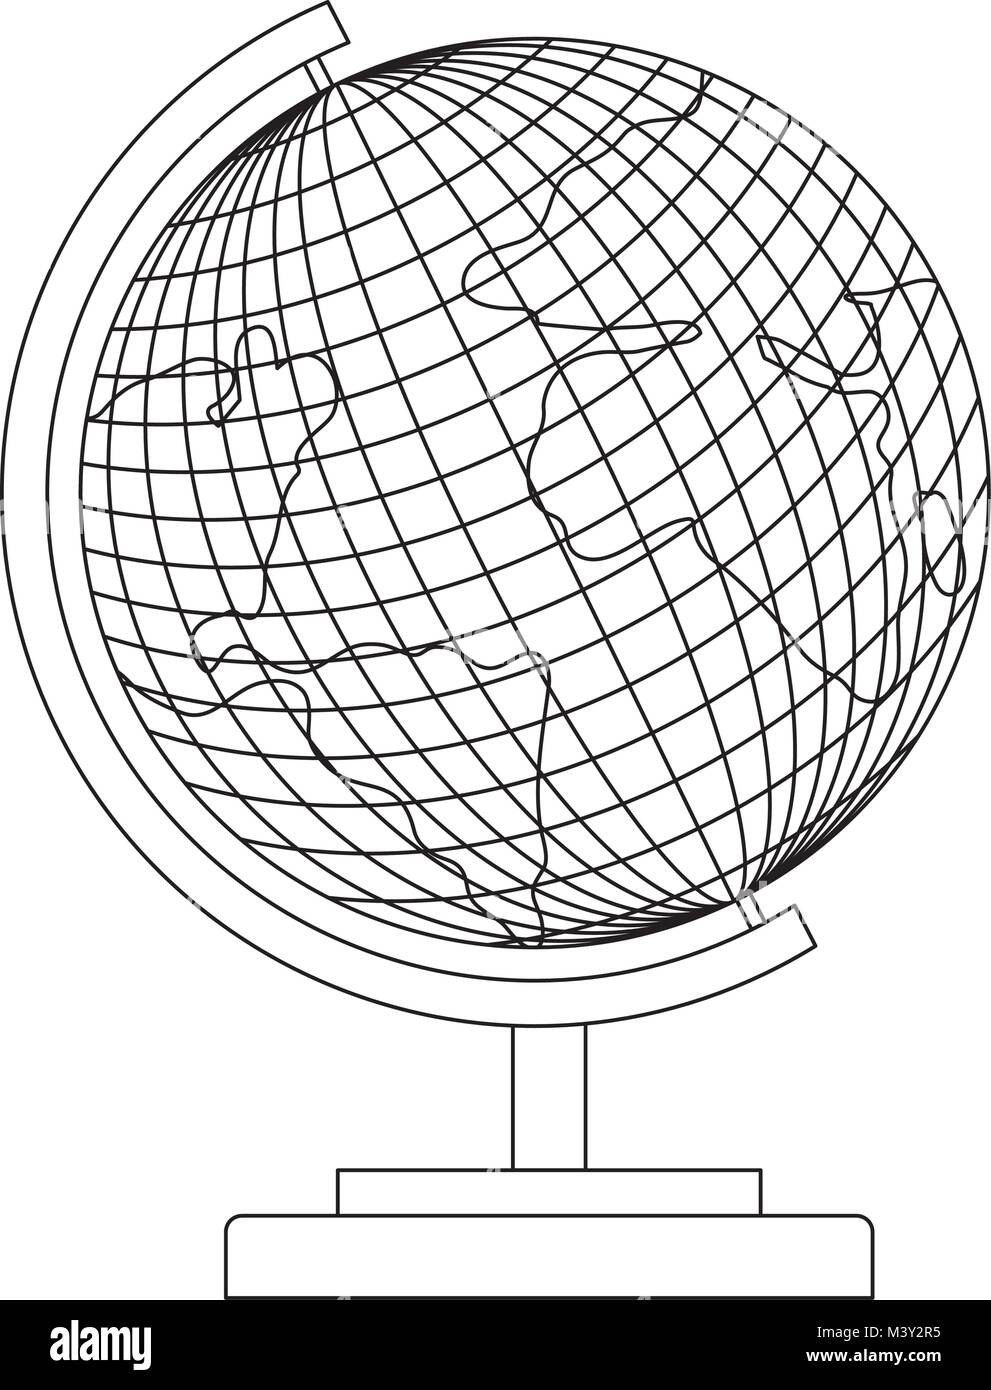 world planet earth icon - Stock Image